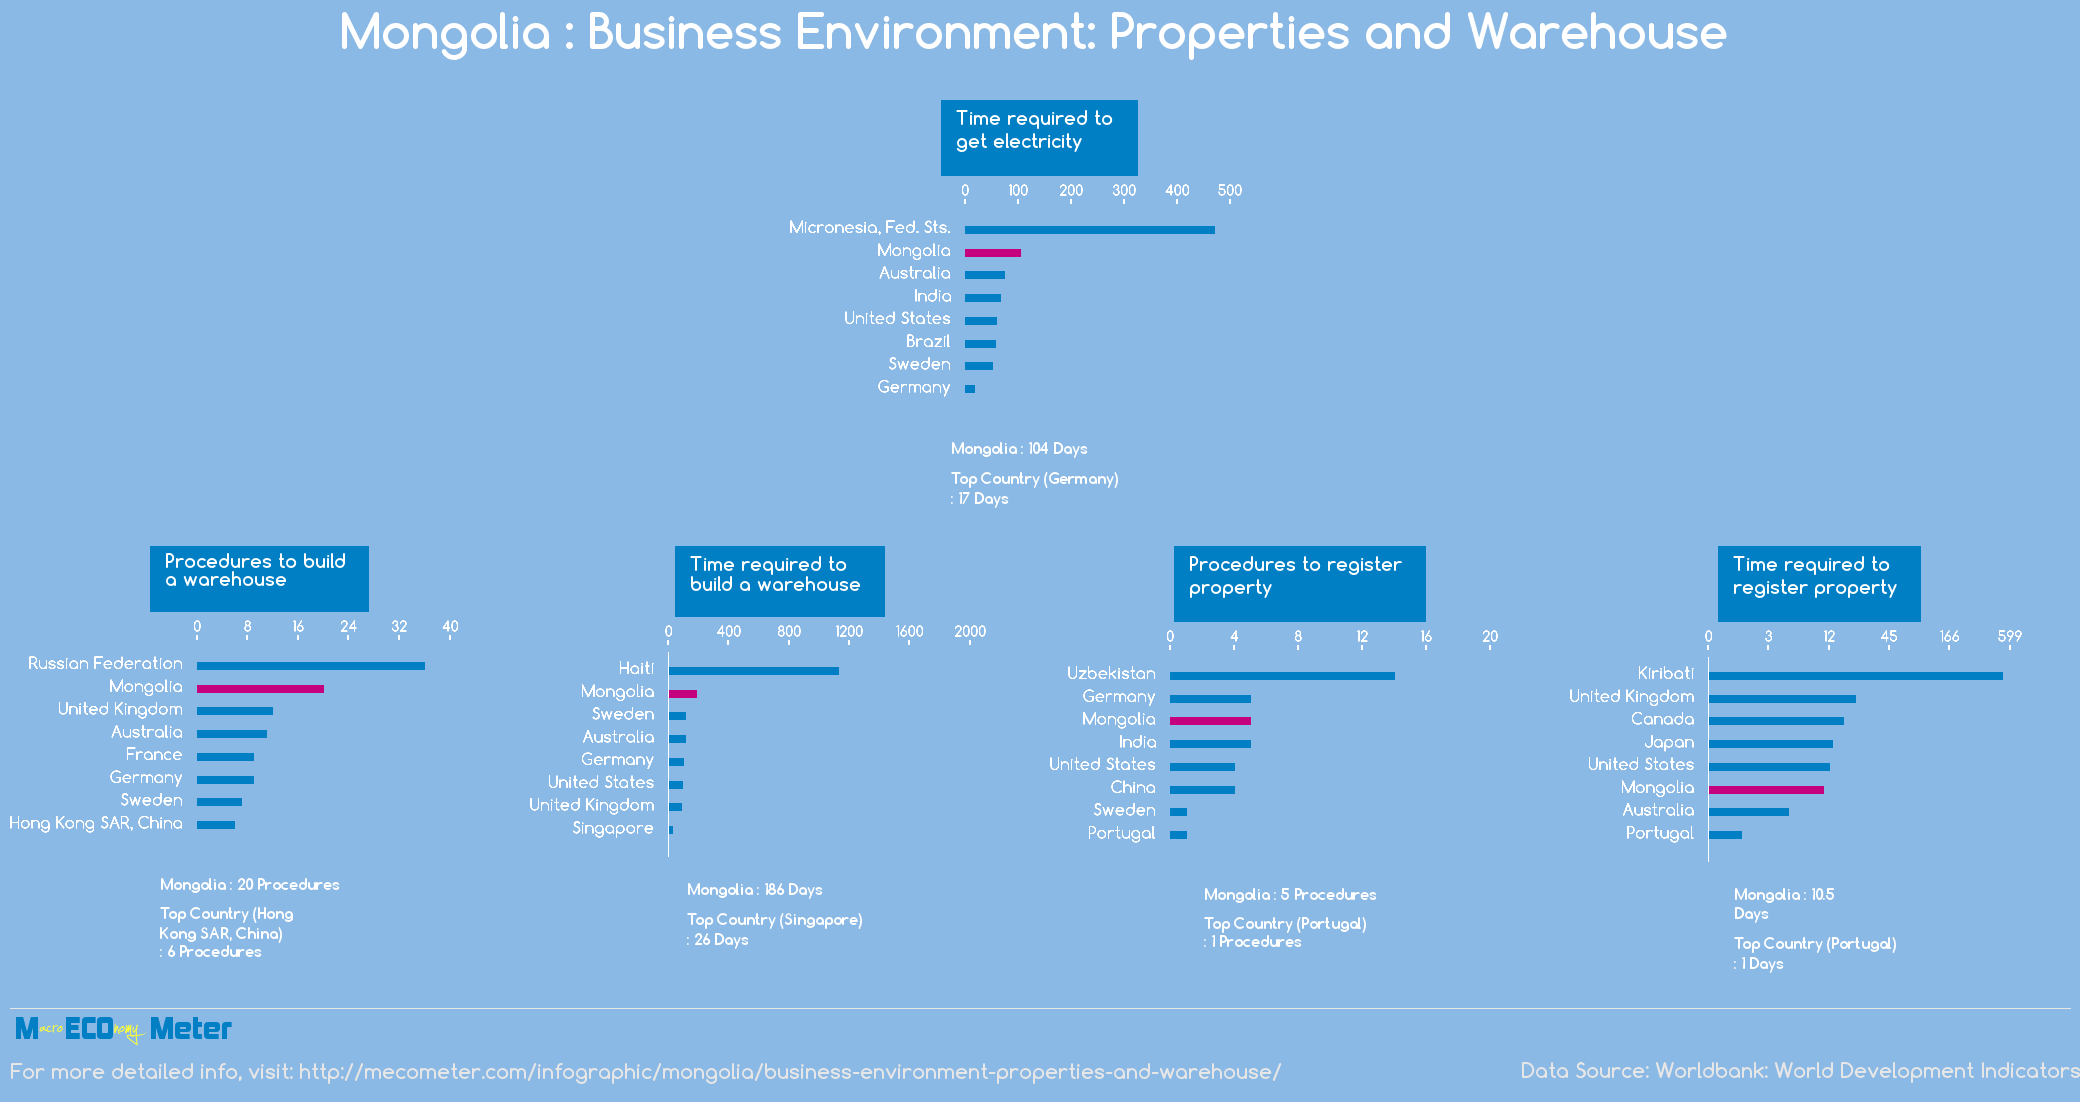 Mongolia : Business Environment: Properties and Warehouse